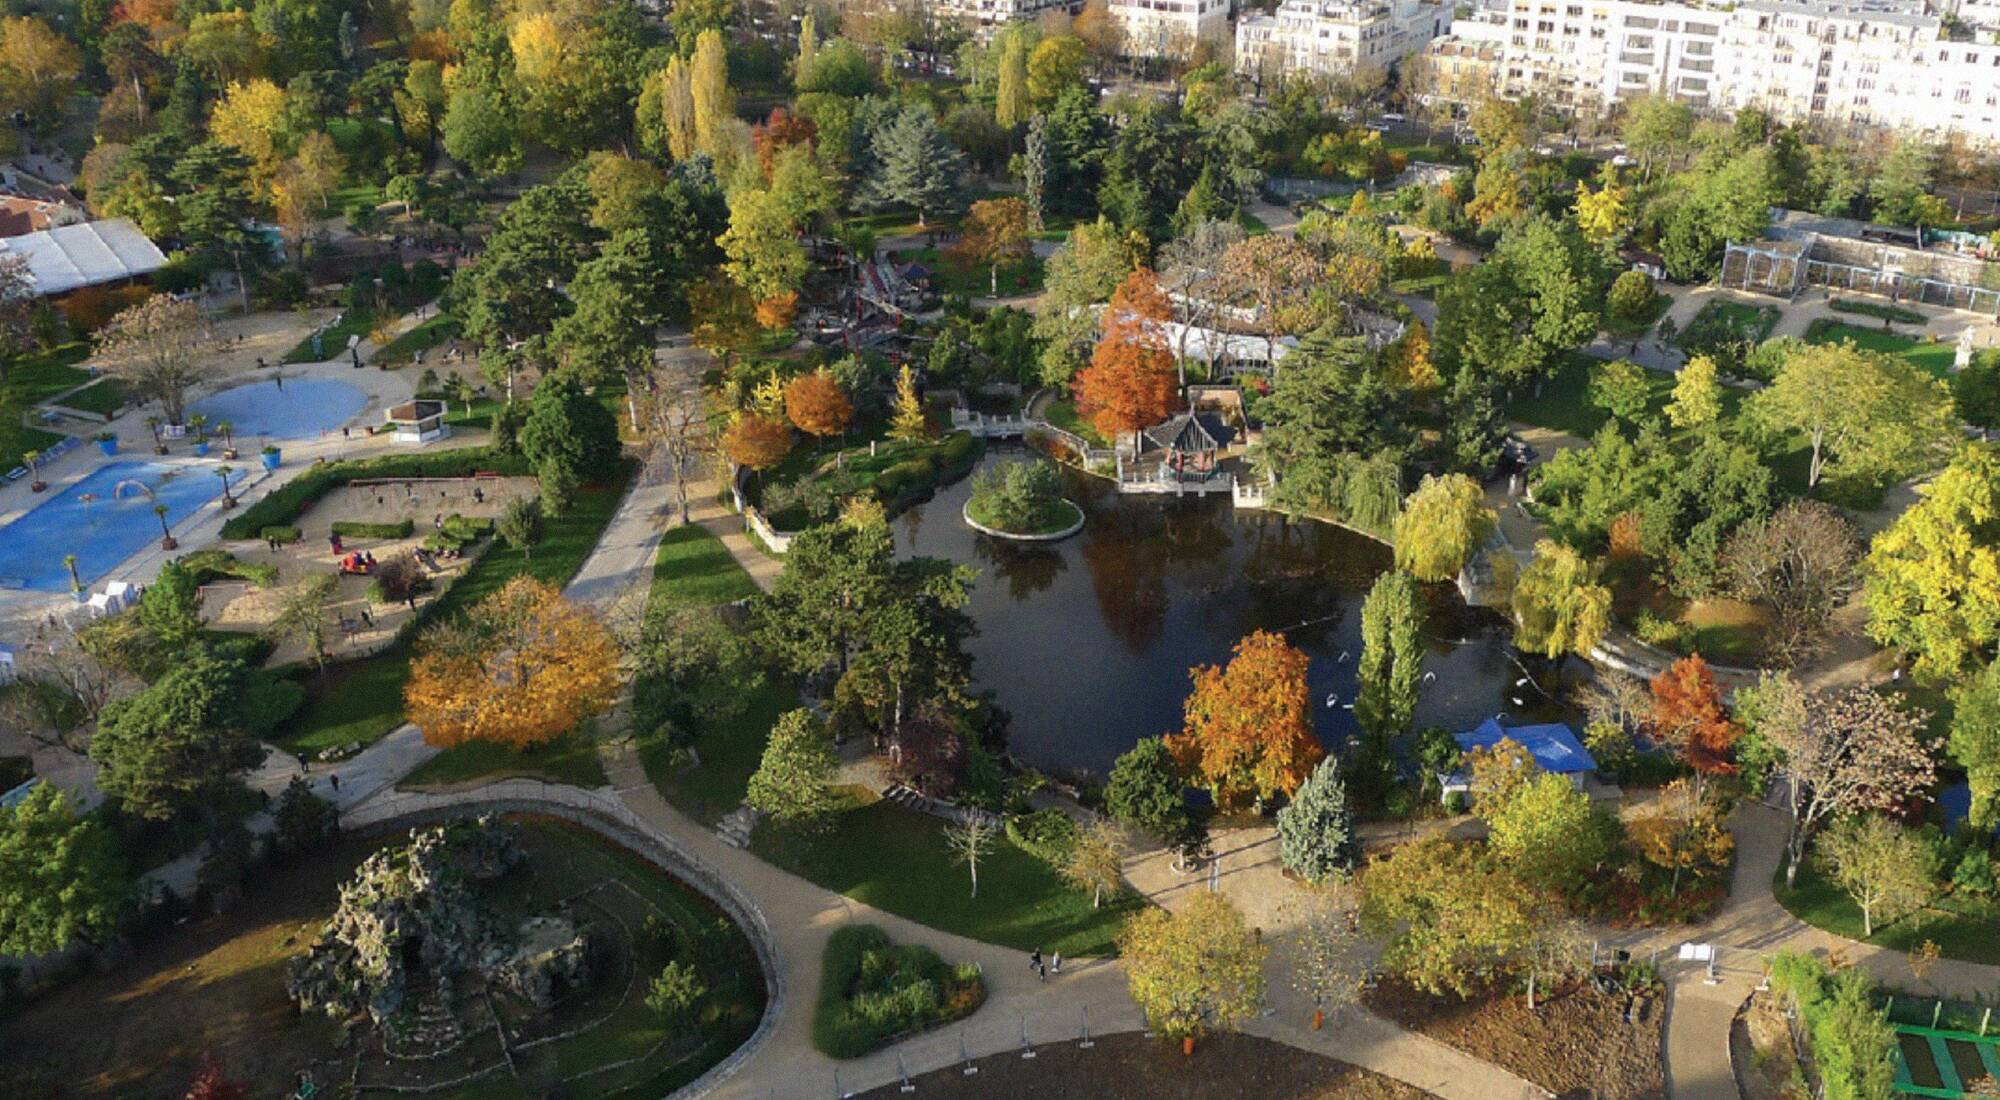 Jardin d acclimatation gets a makeover for spring 2018 lvmh for Jardin d acclimatation